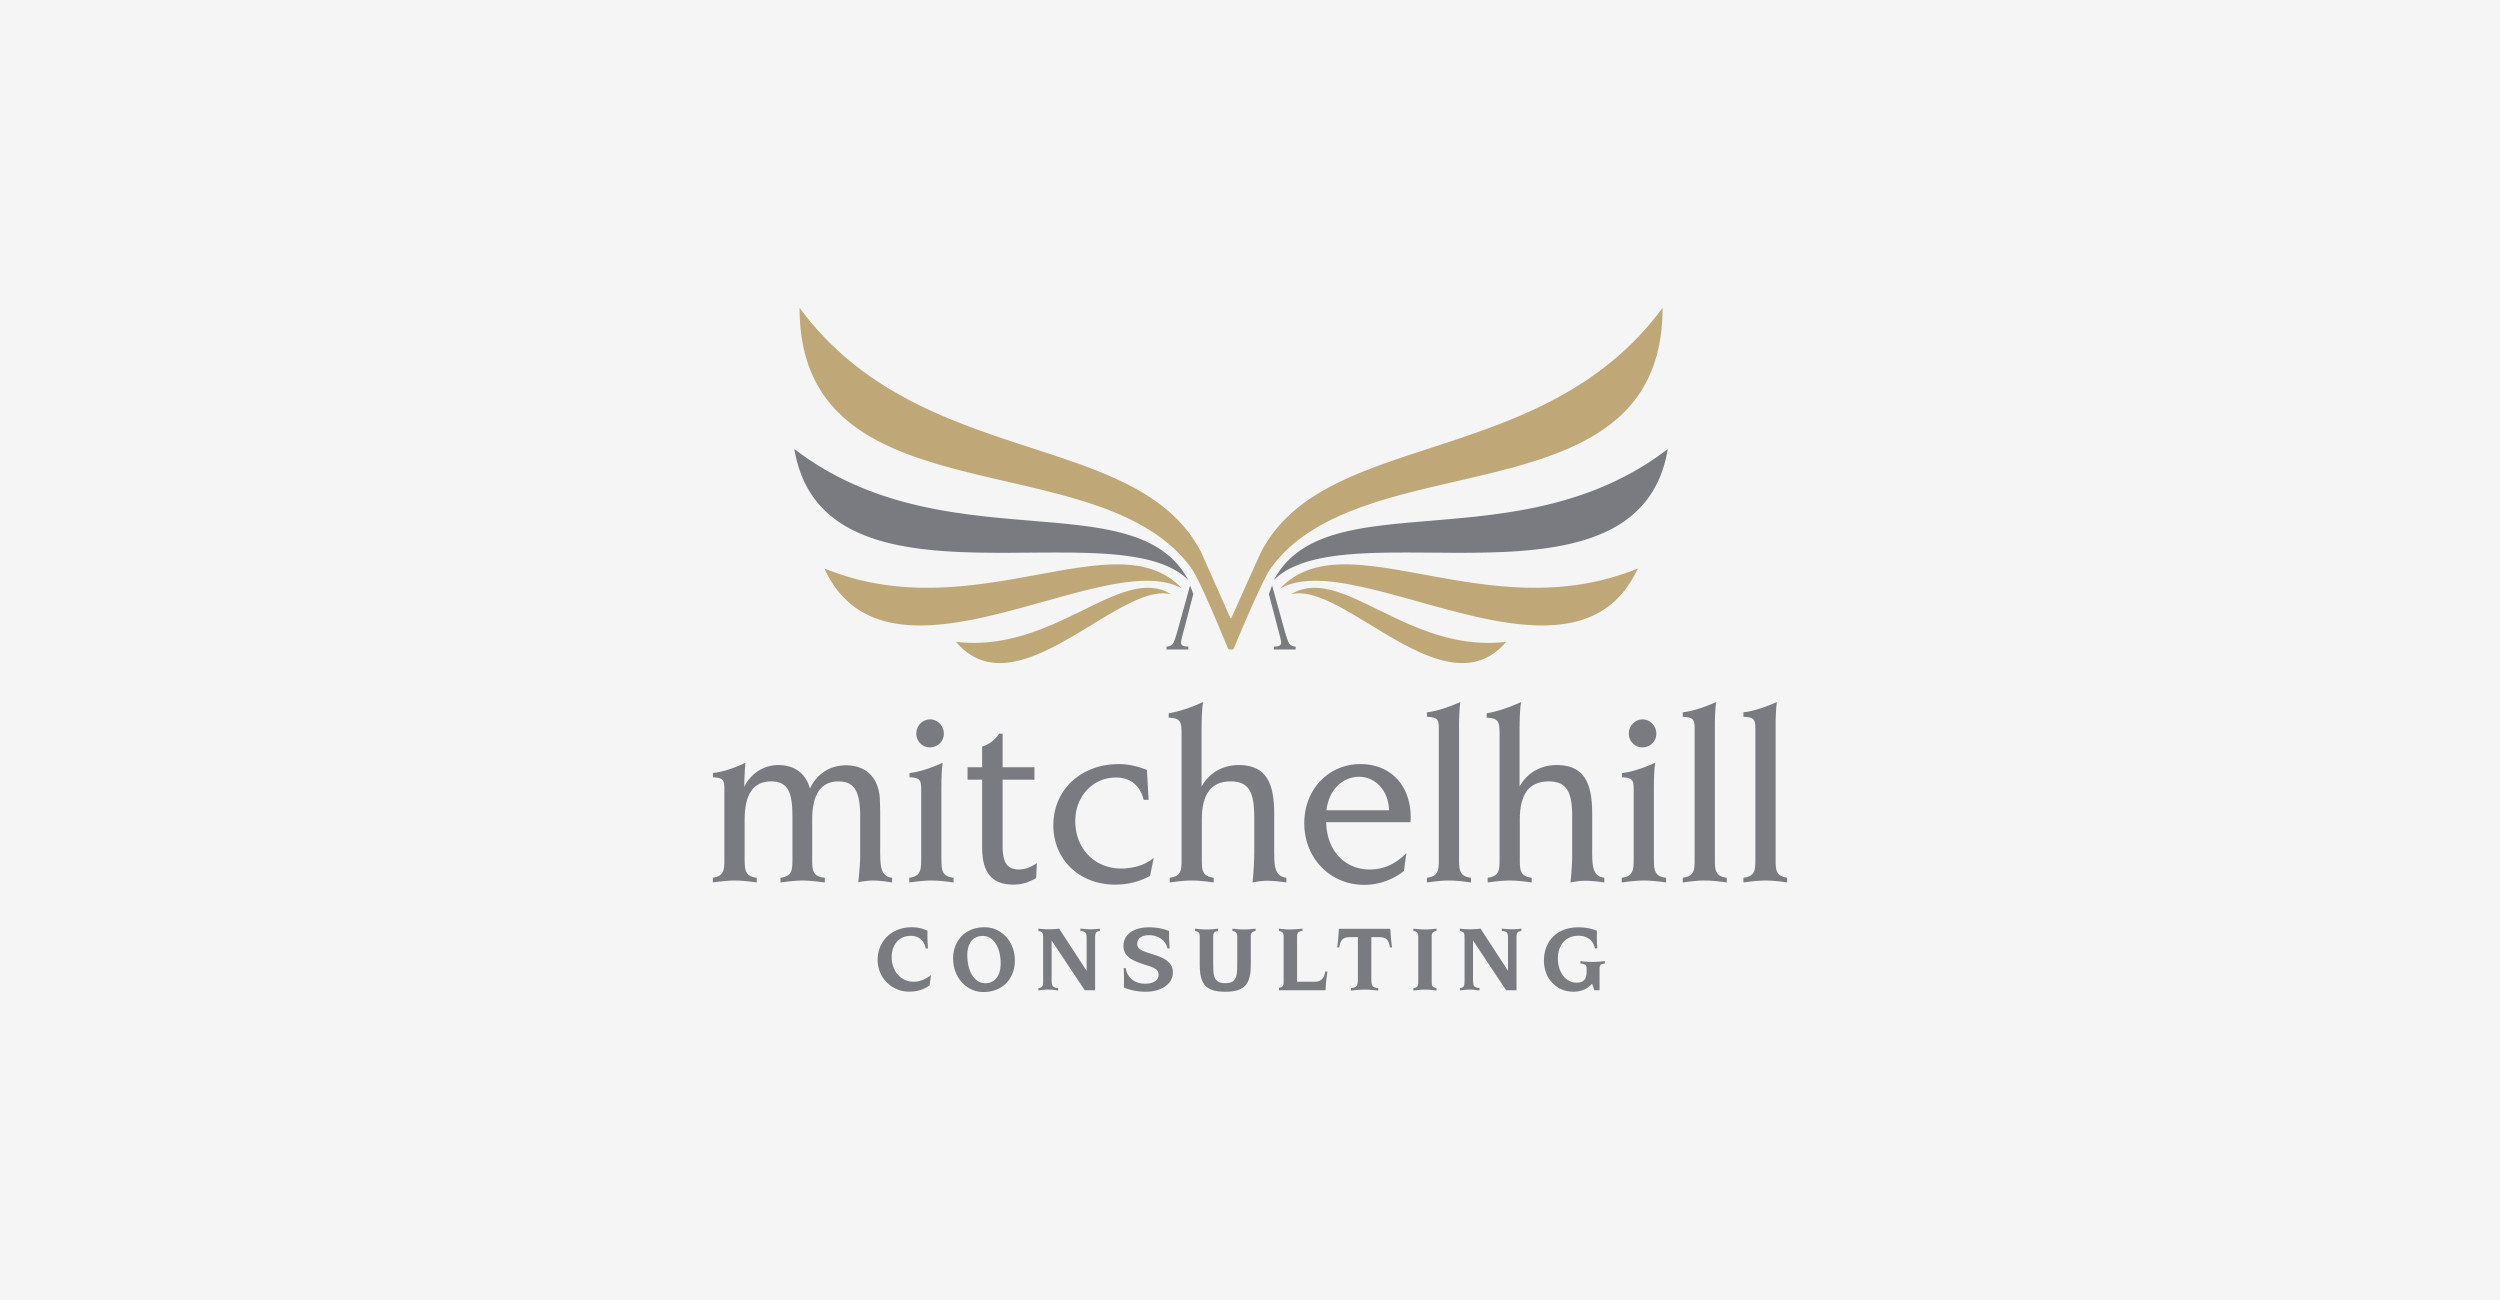 Mitchelhill Consulting